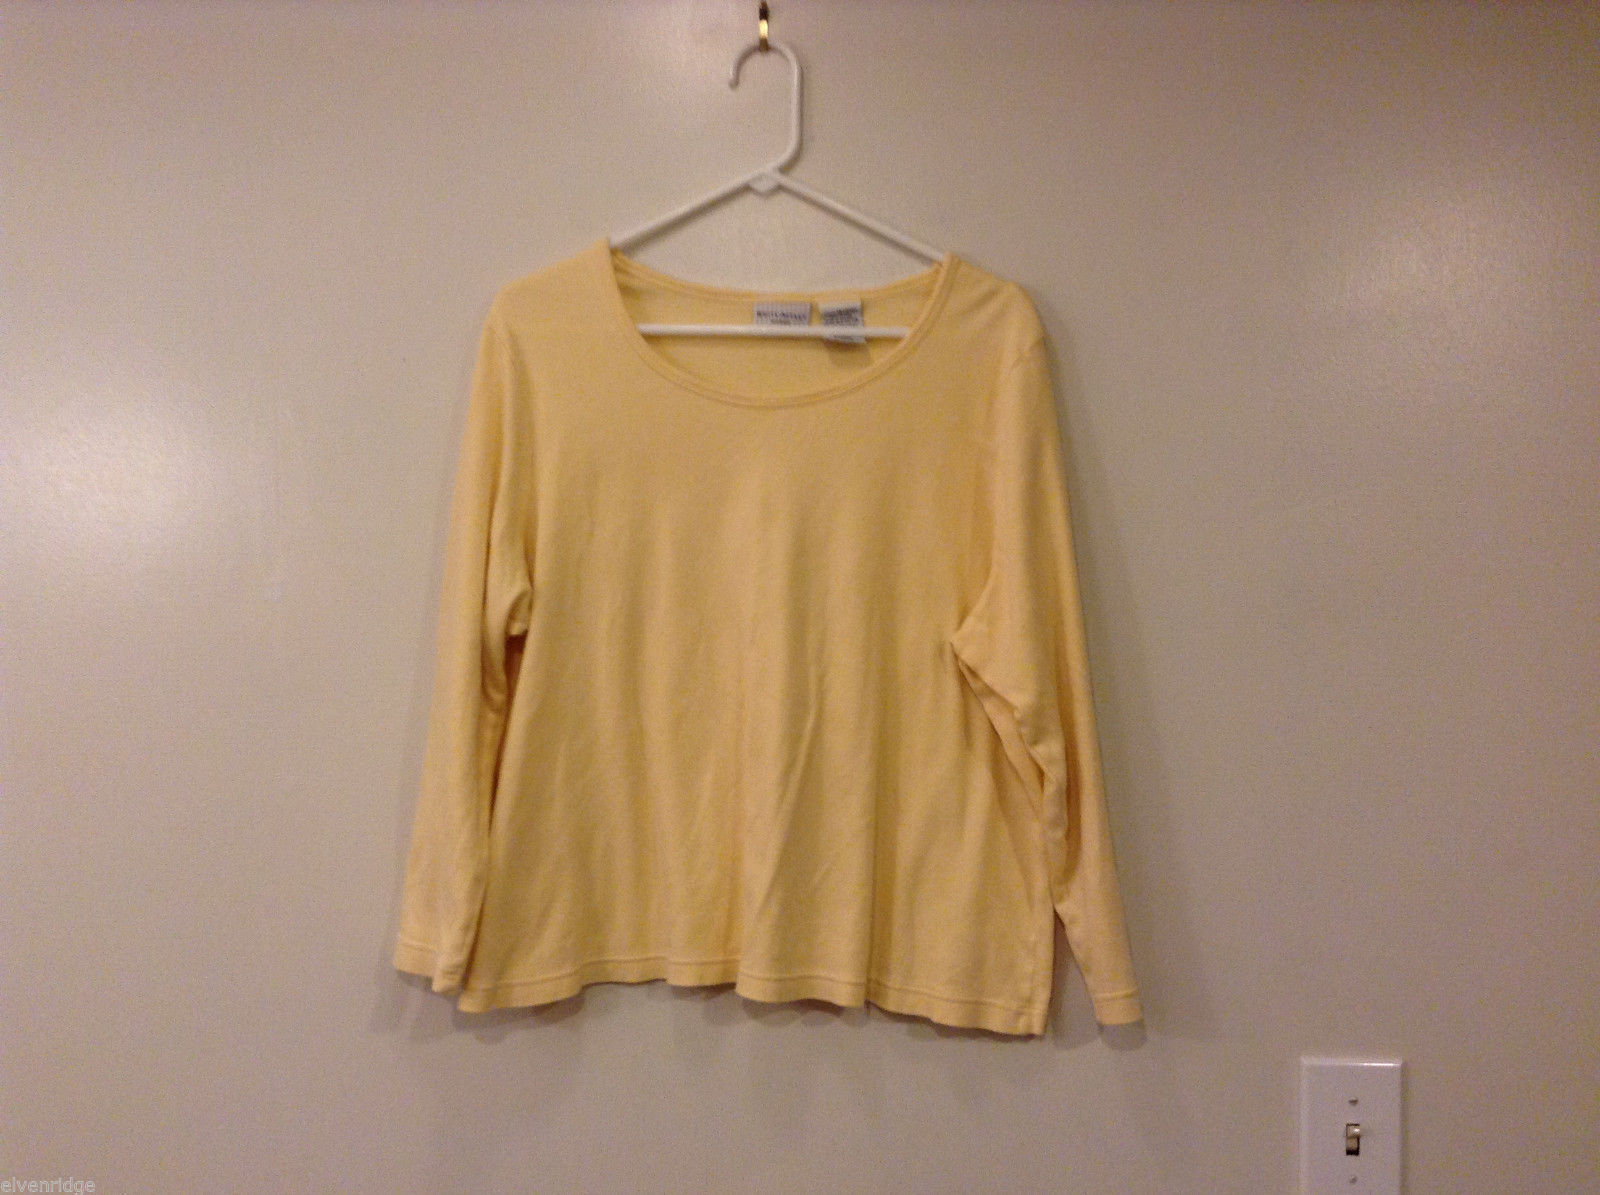 White Stag Women Plus Size 1X 16W T-Shirt Tee Top Warm Lemon Yellow Long Sleeves